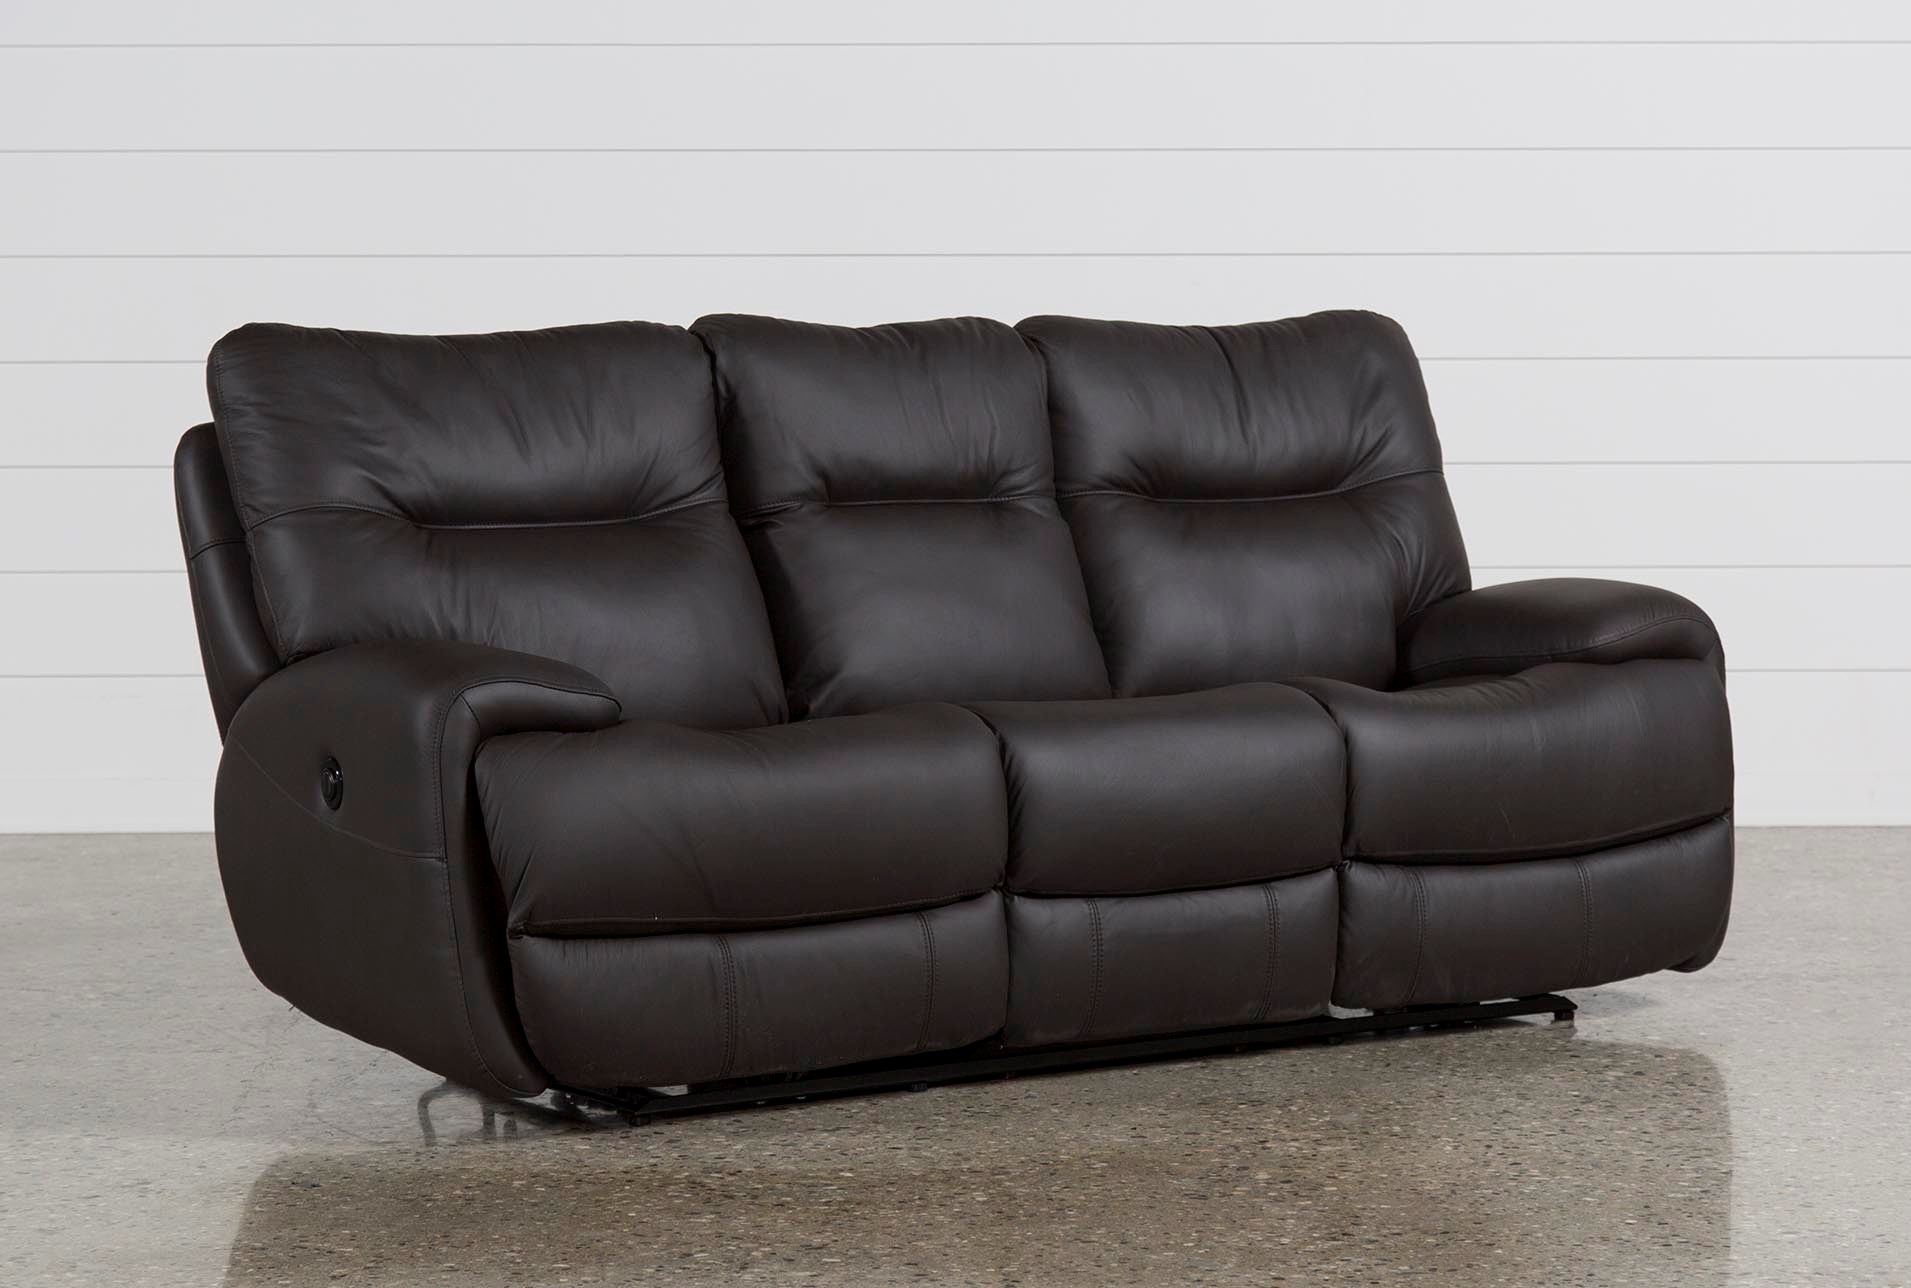 office recliners. Oliver Graphite Leather Power Reclining Sofa Office Recliners U